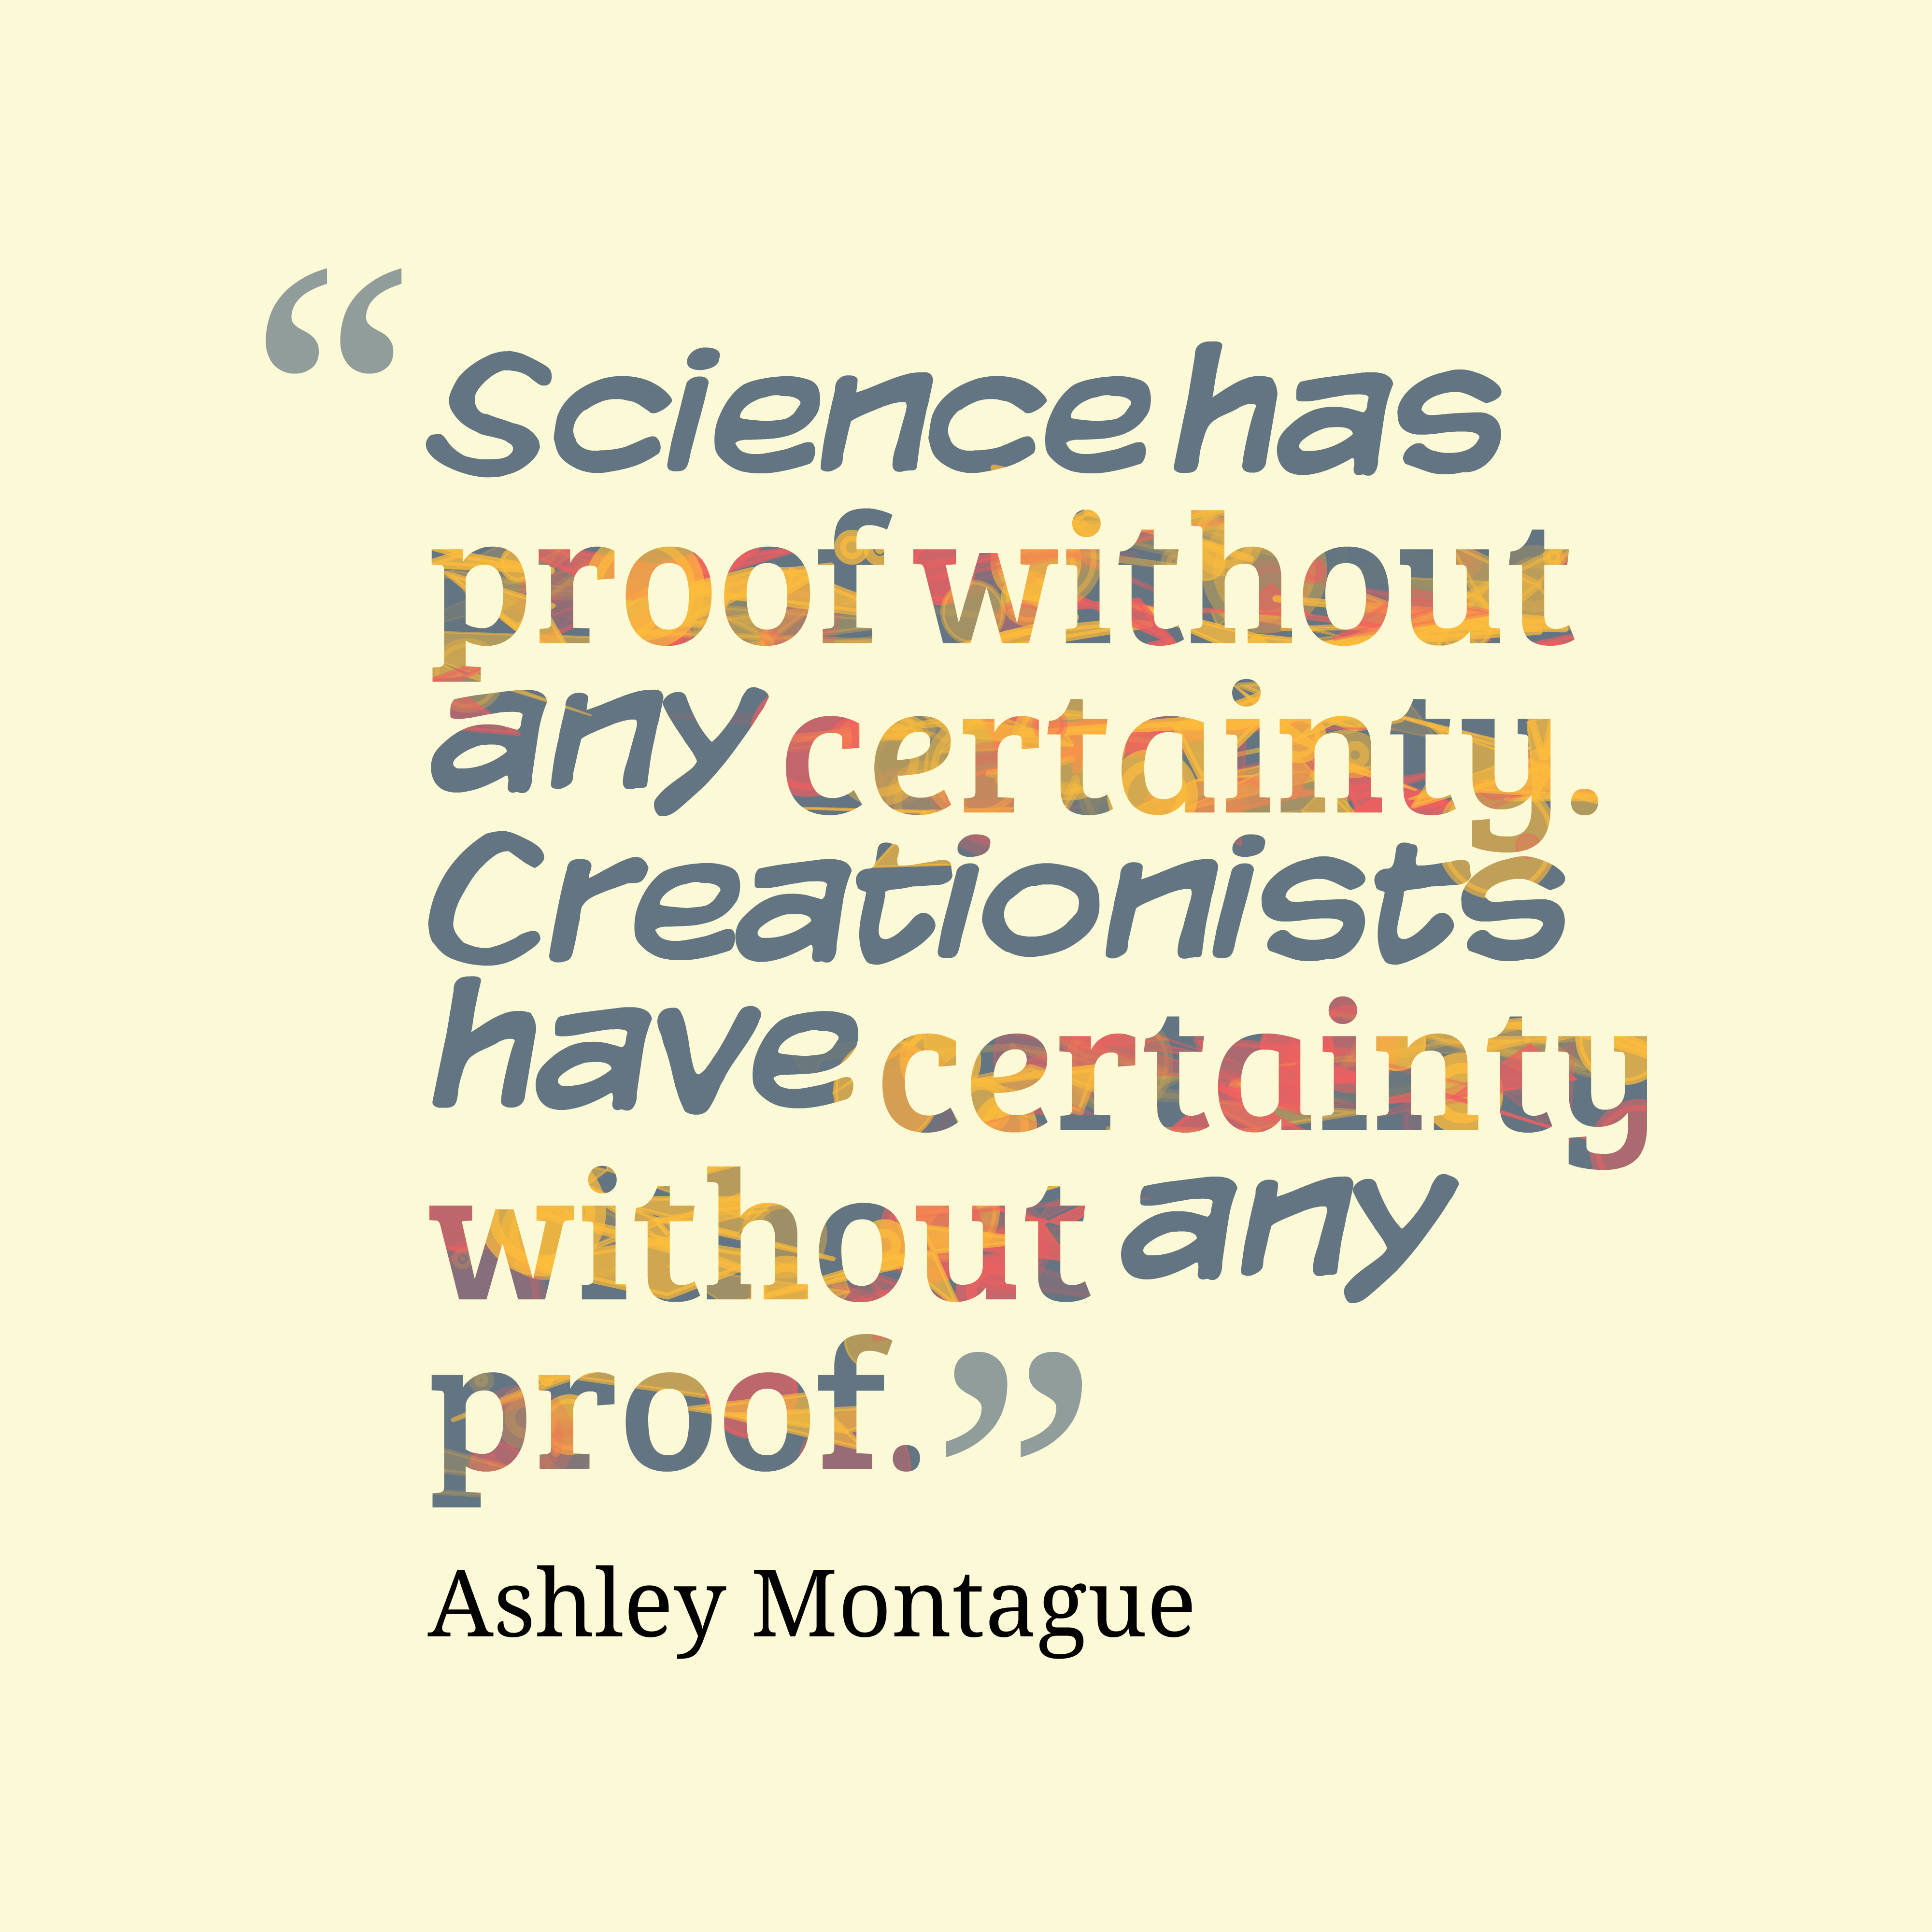 science quotes proof ashley montague quotesgram quotescover without file type resolution redesign